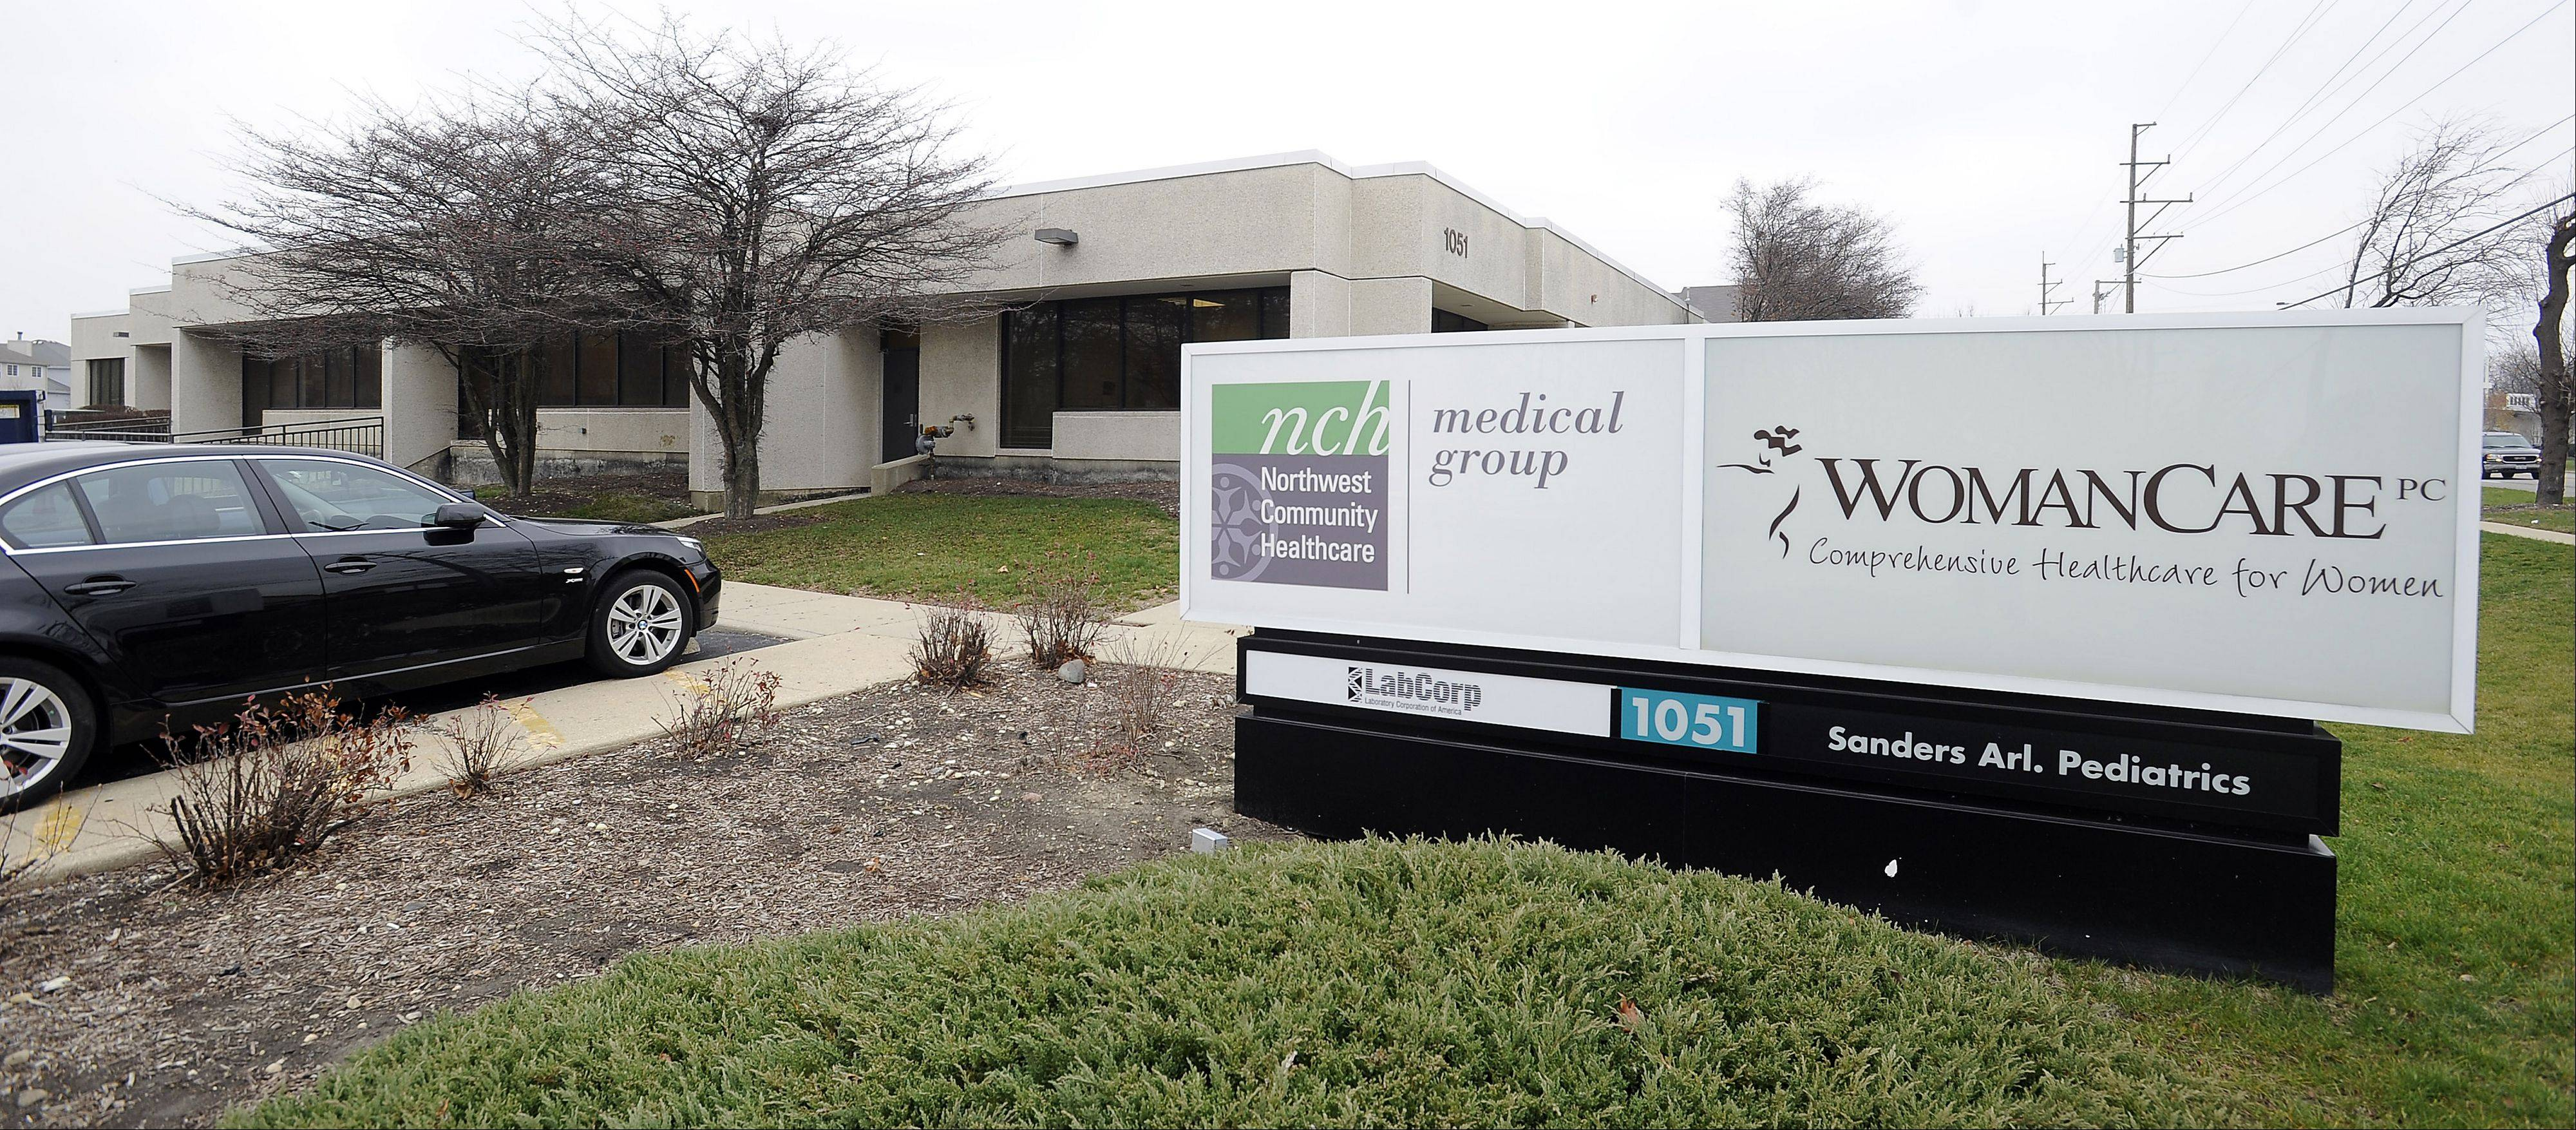 Trustees stood by their decision to allow the expansion of the medical building in Arlington Heights, but they did add the condition of wanting tenants signed up for the building first.